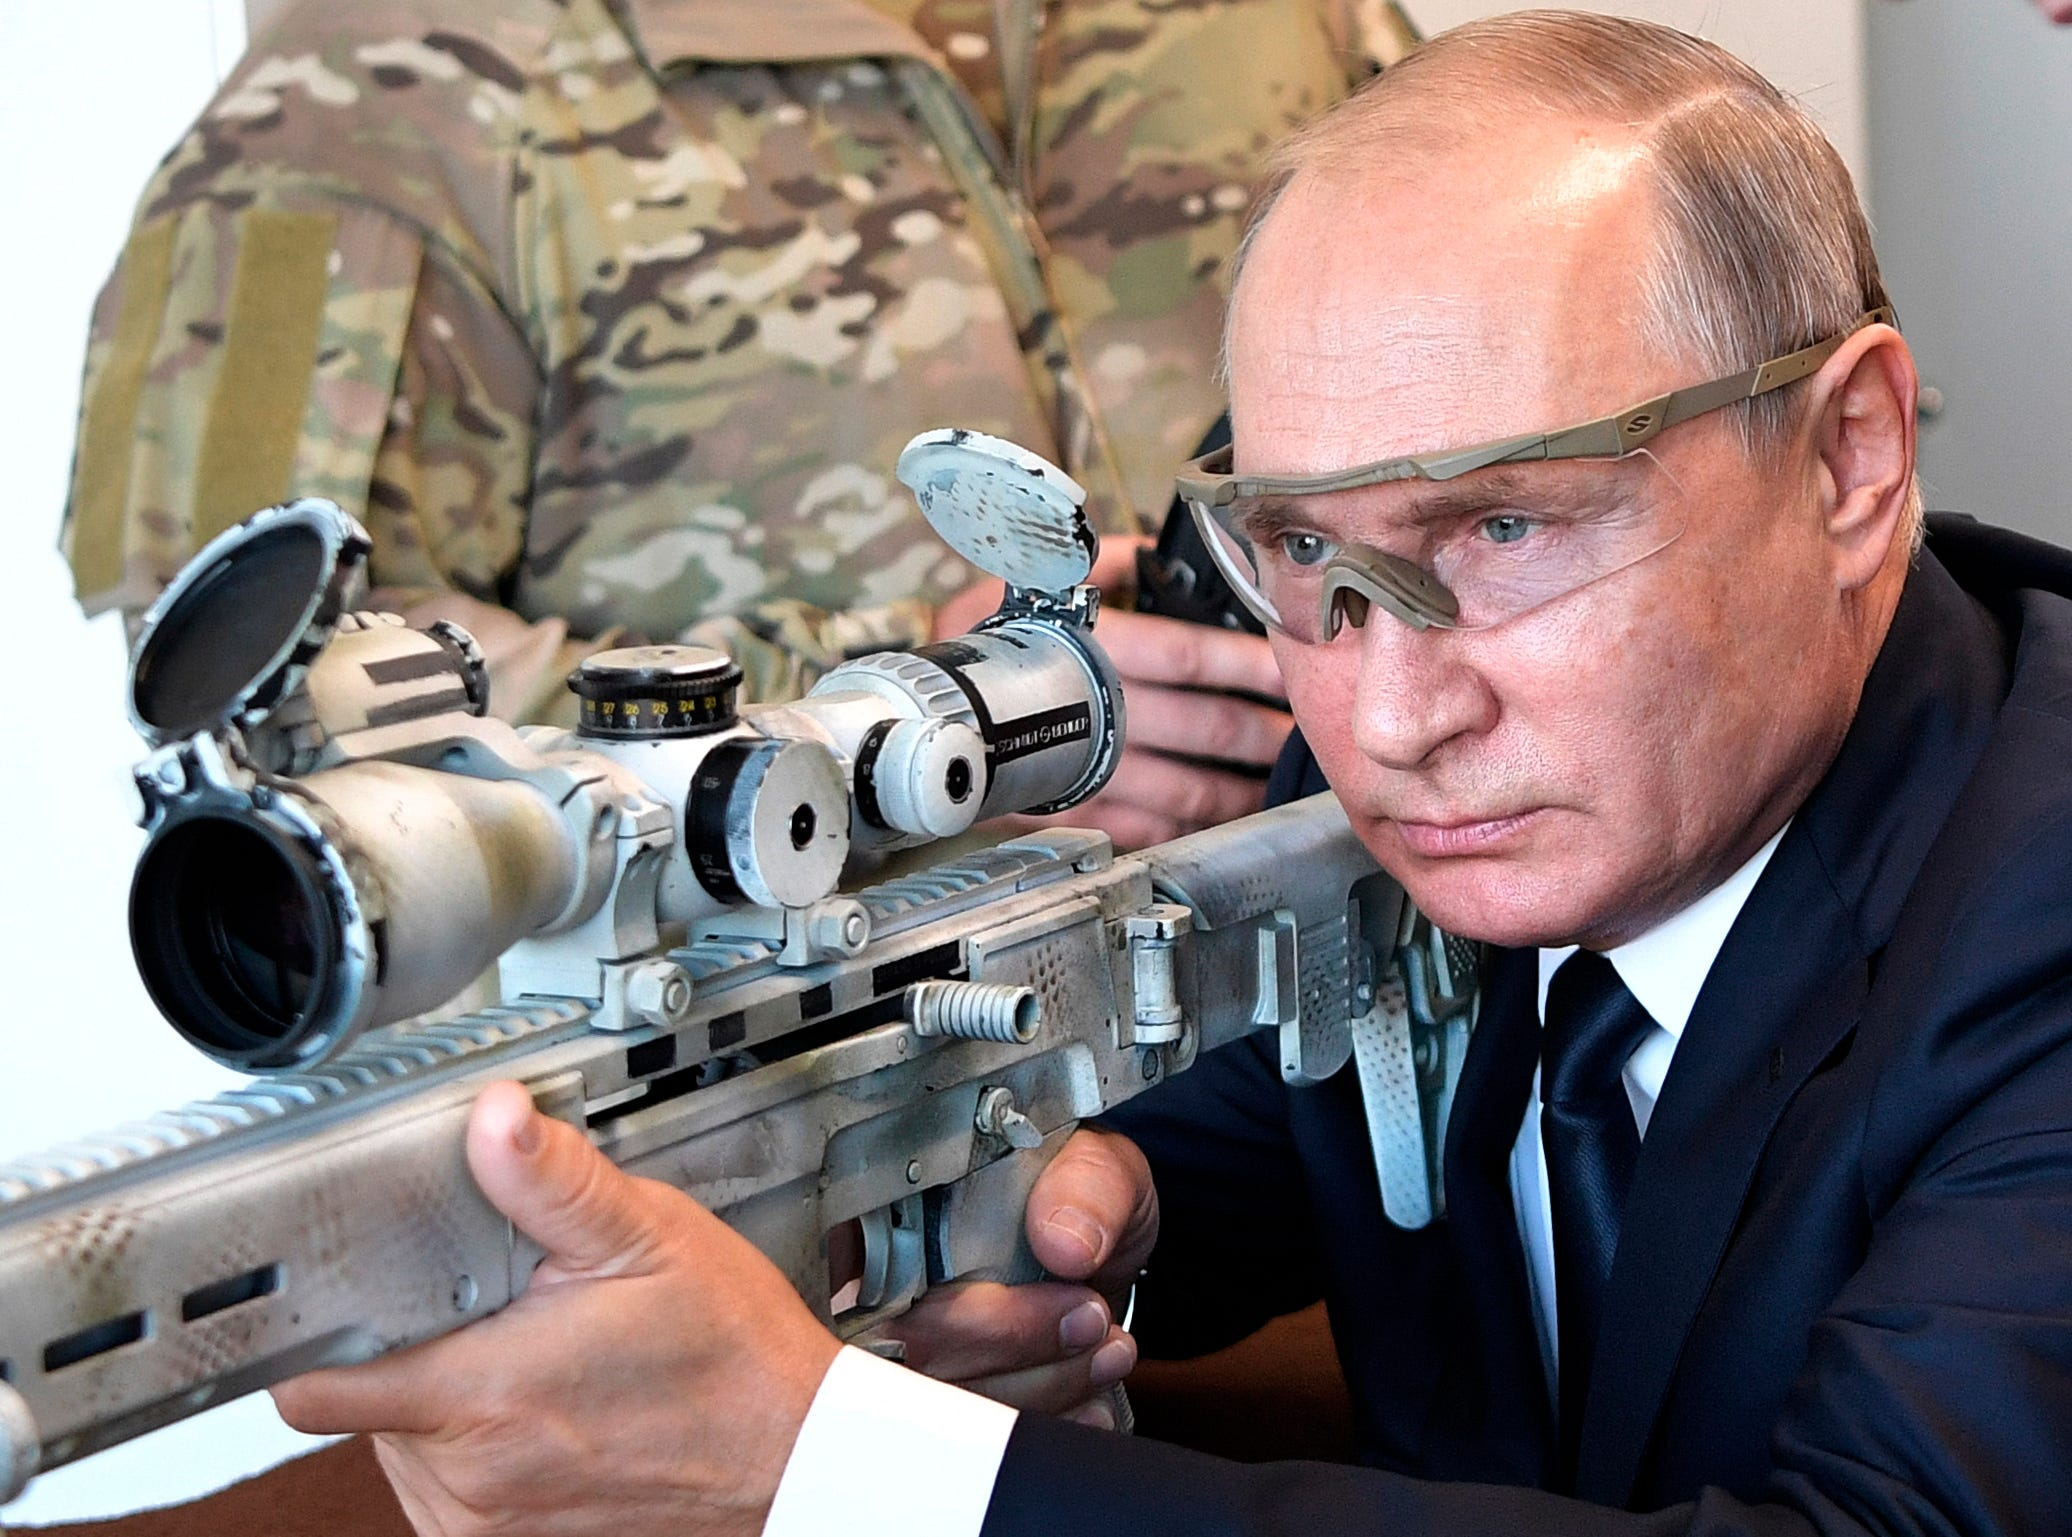 Russian President Vladimir Putin aims a sniper rifle during a visit to the Patriot military exhibition center outside Moscow on Wednesday, Sept. 19, 2018. Putin chaired a meeting that focused on new arms programs.